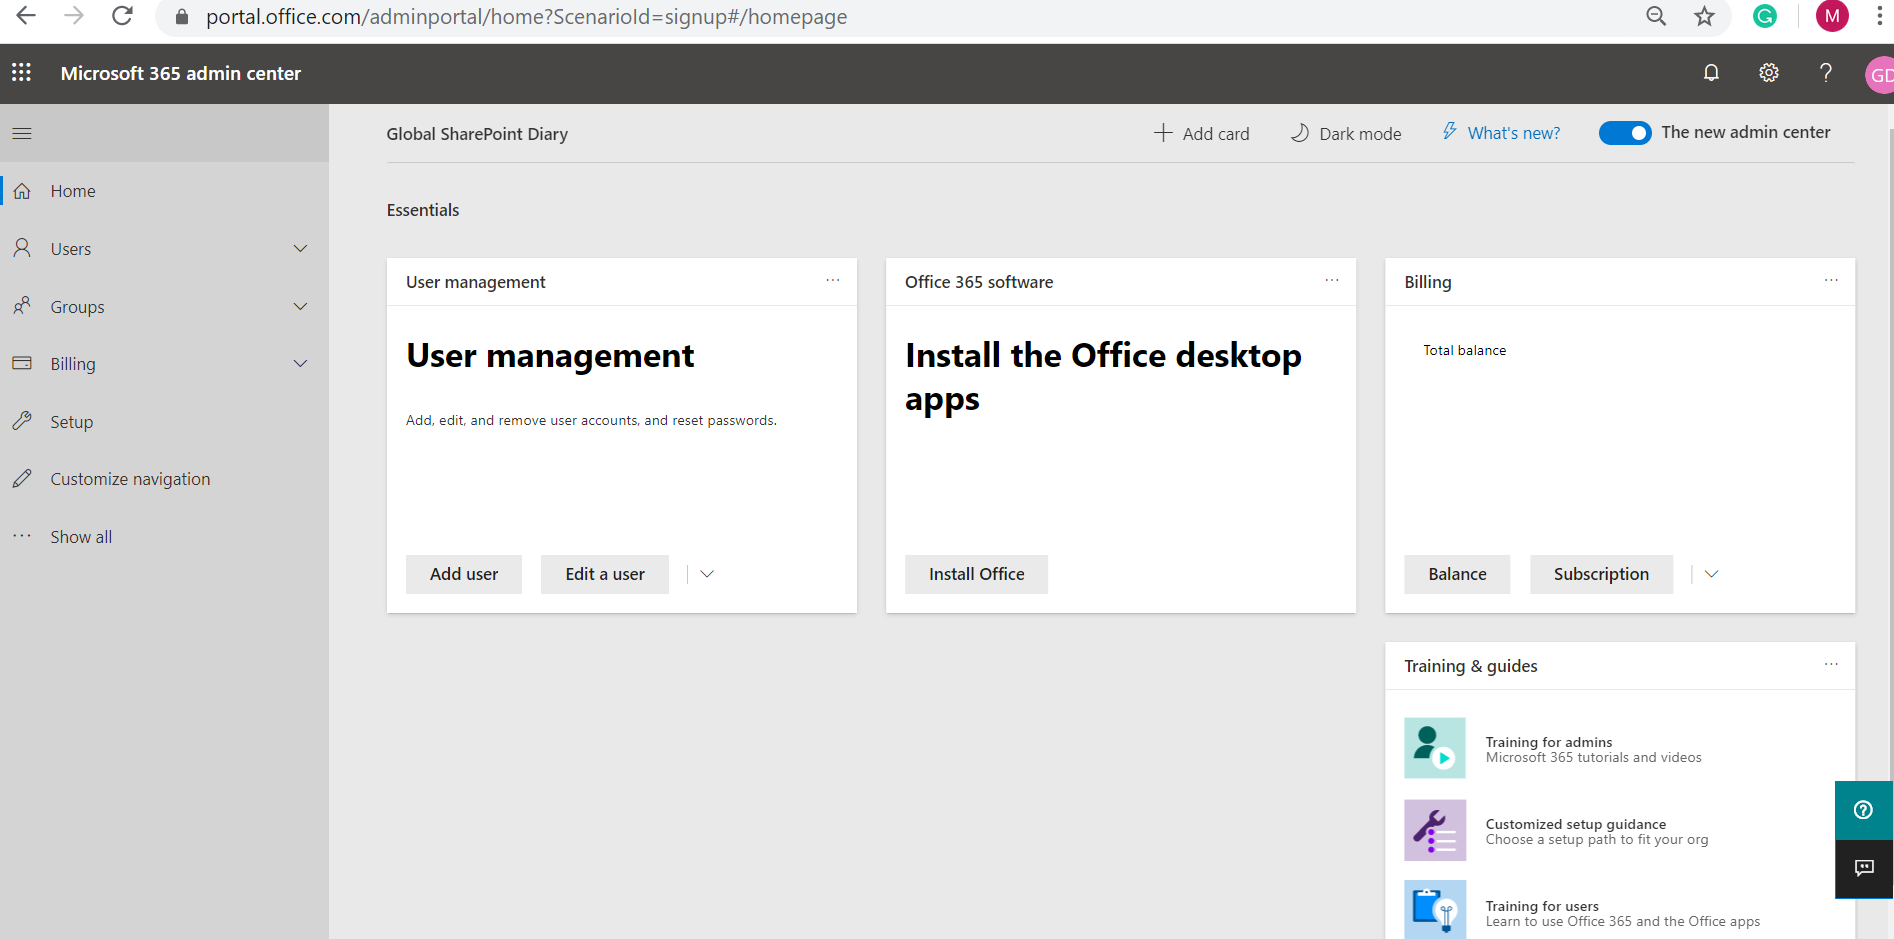 Office 365 E3 Trial - Microsoft 365 admin center home page - after configuration